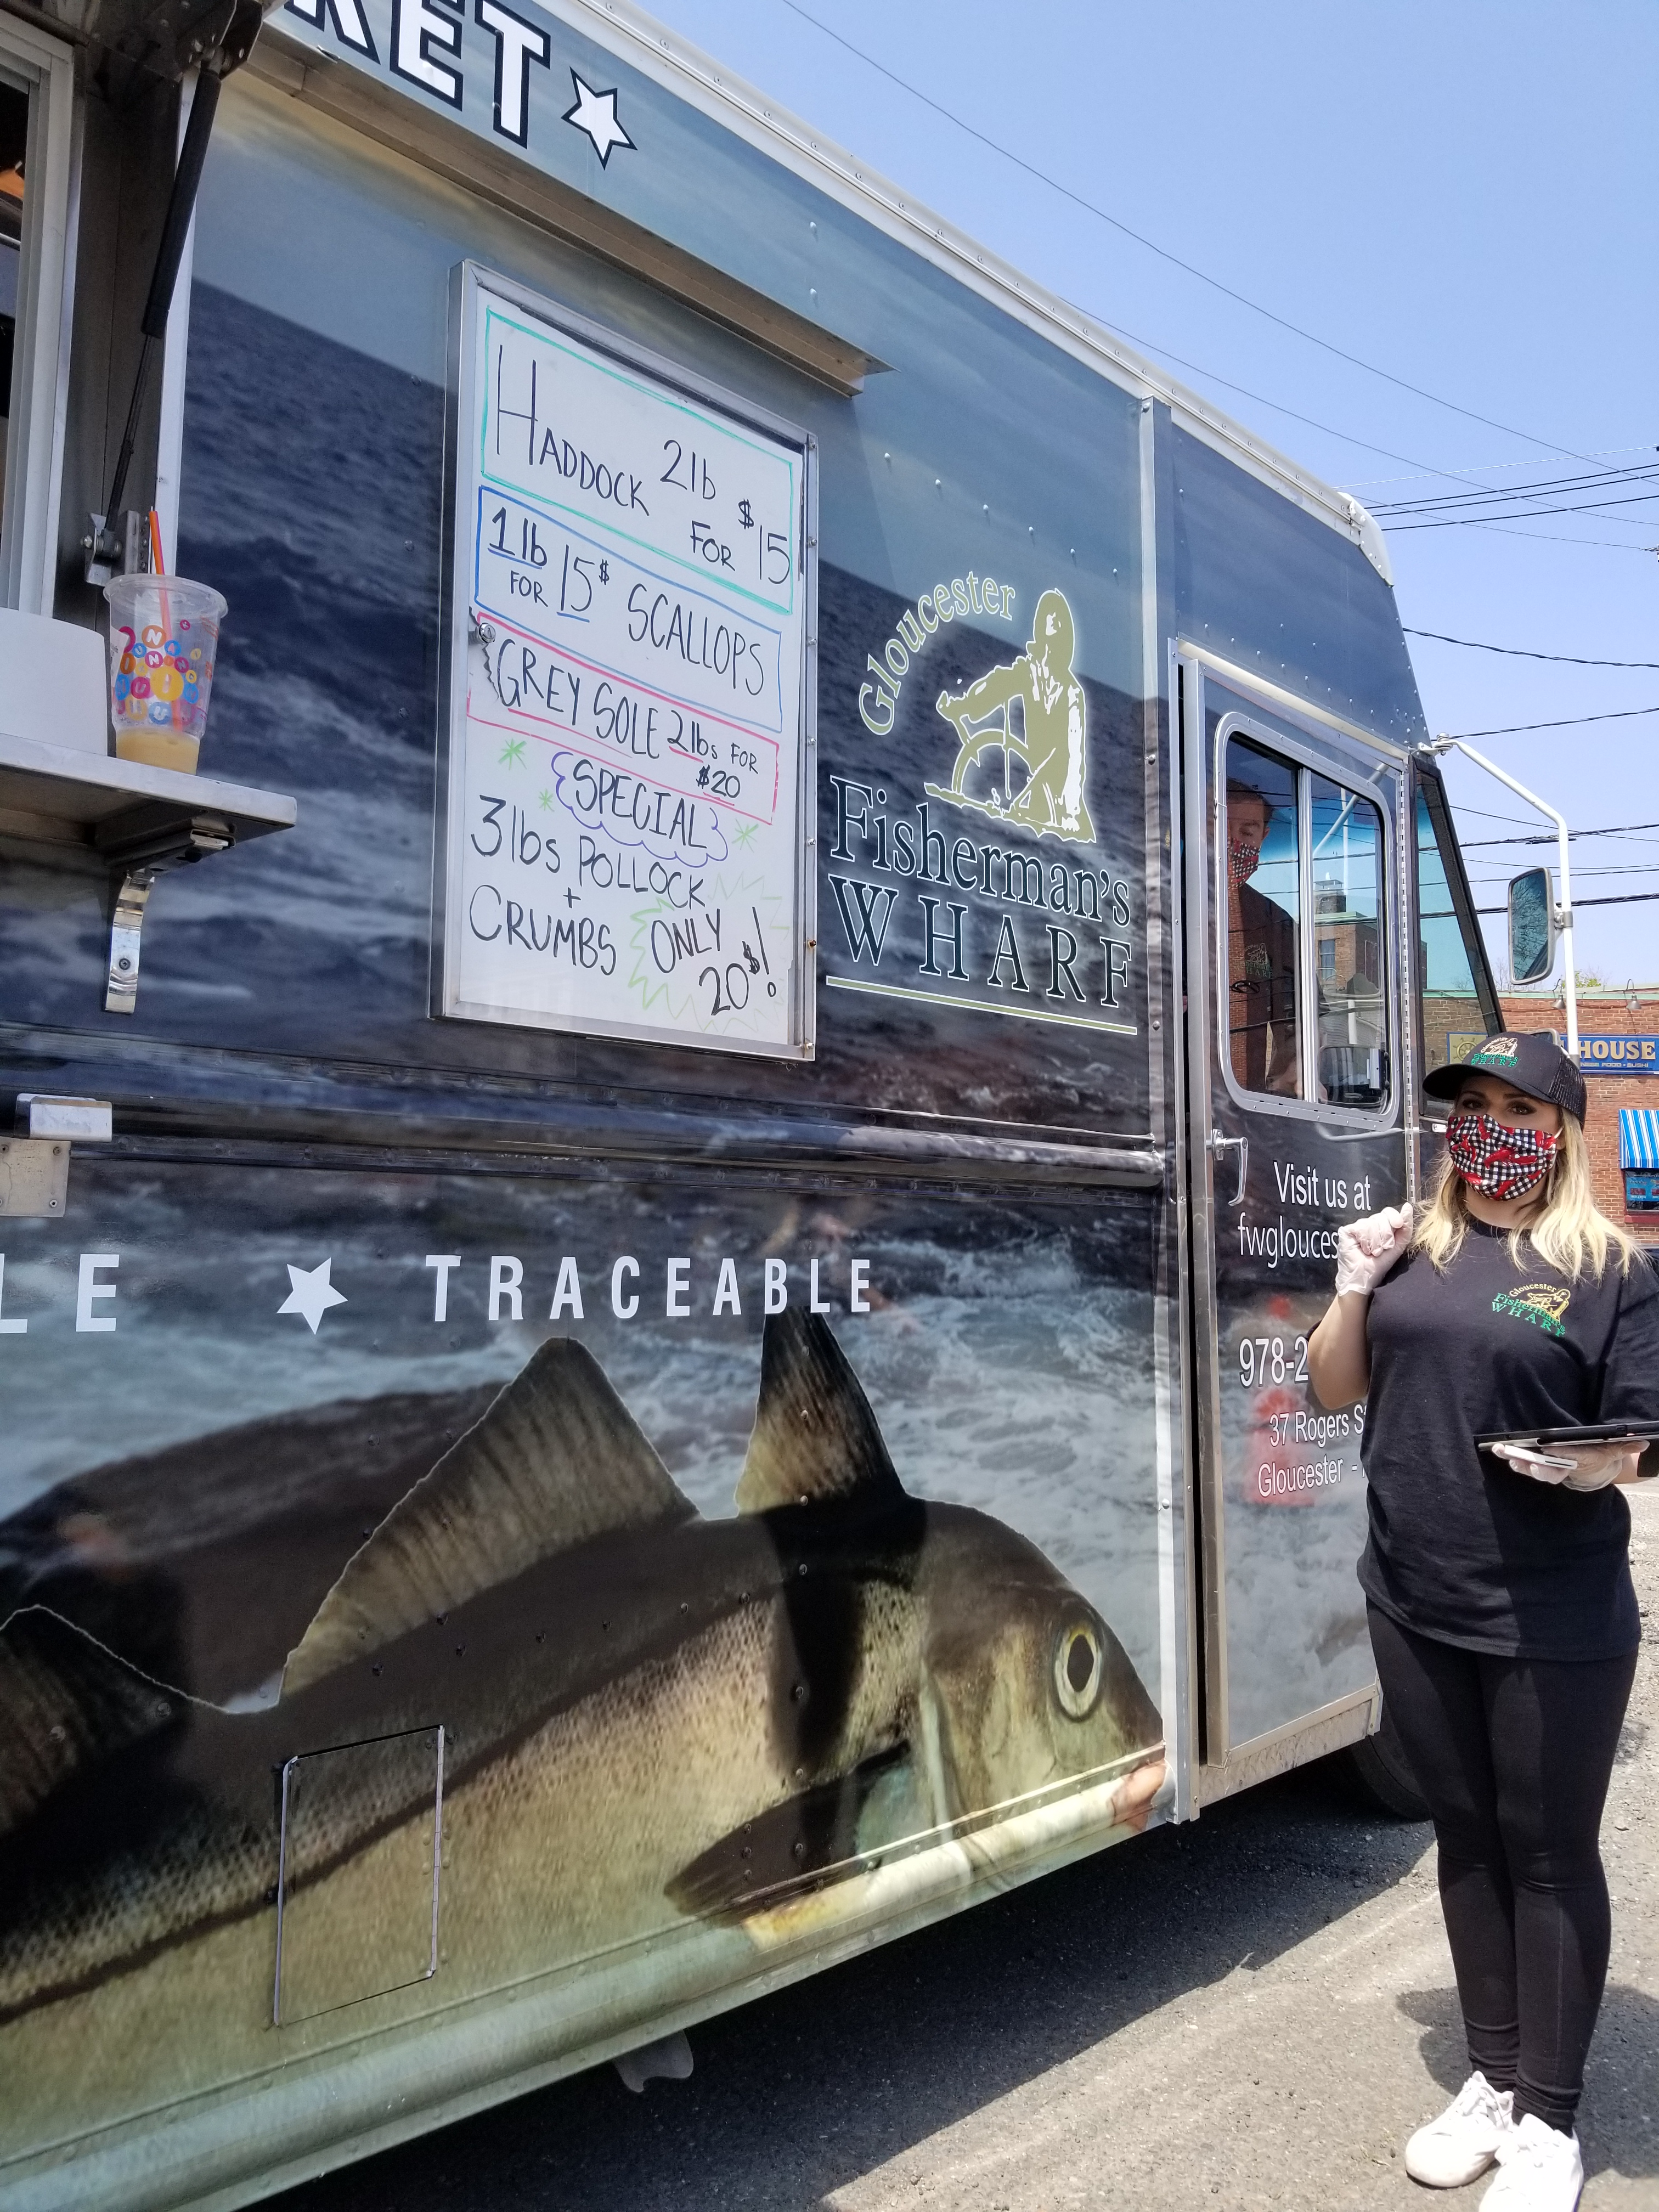 Fishermans wharf seafood truck